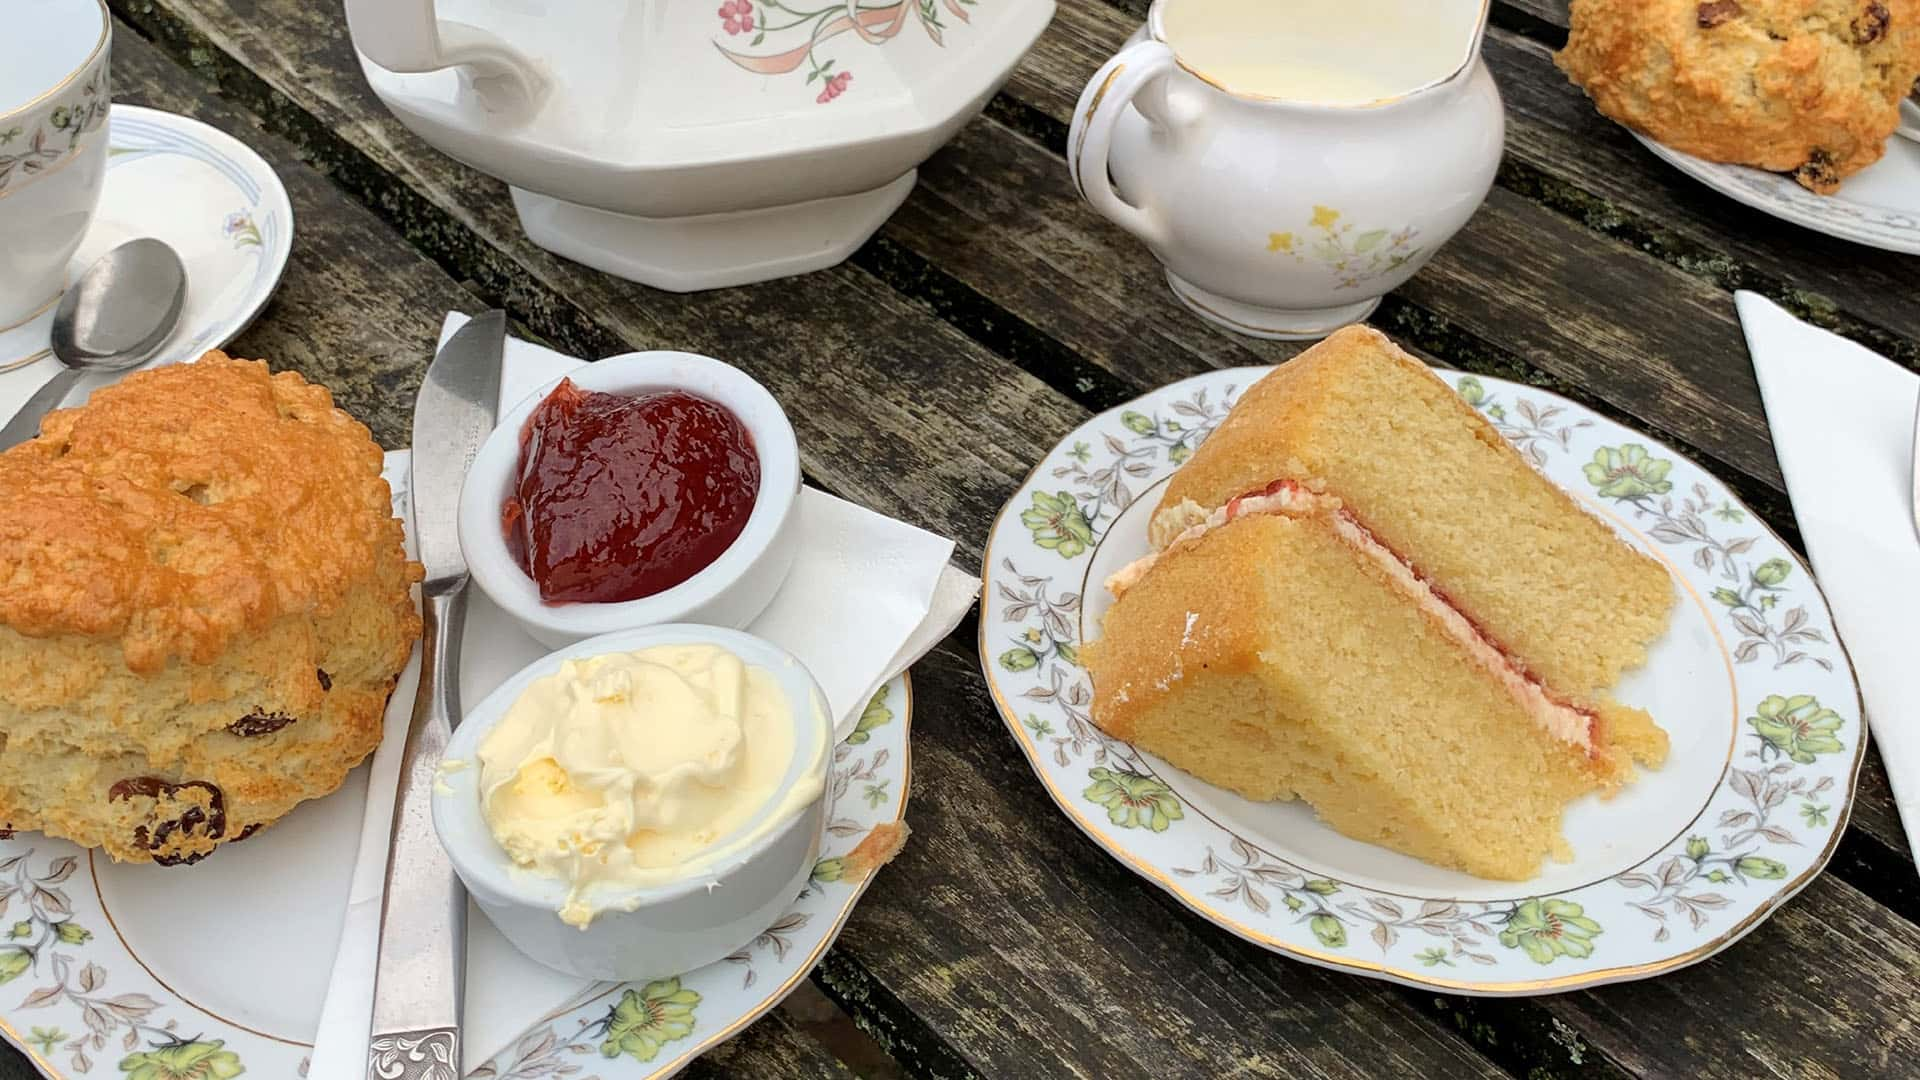 Cake and Scones at Hever Castle